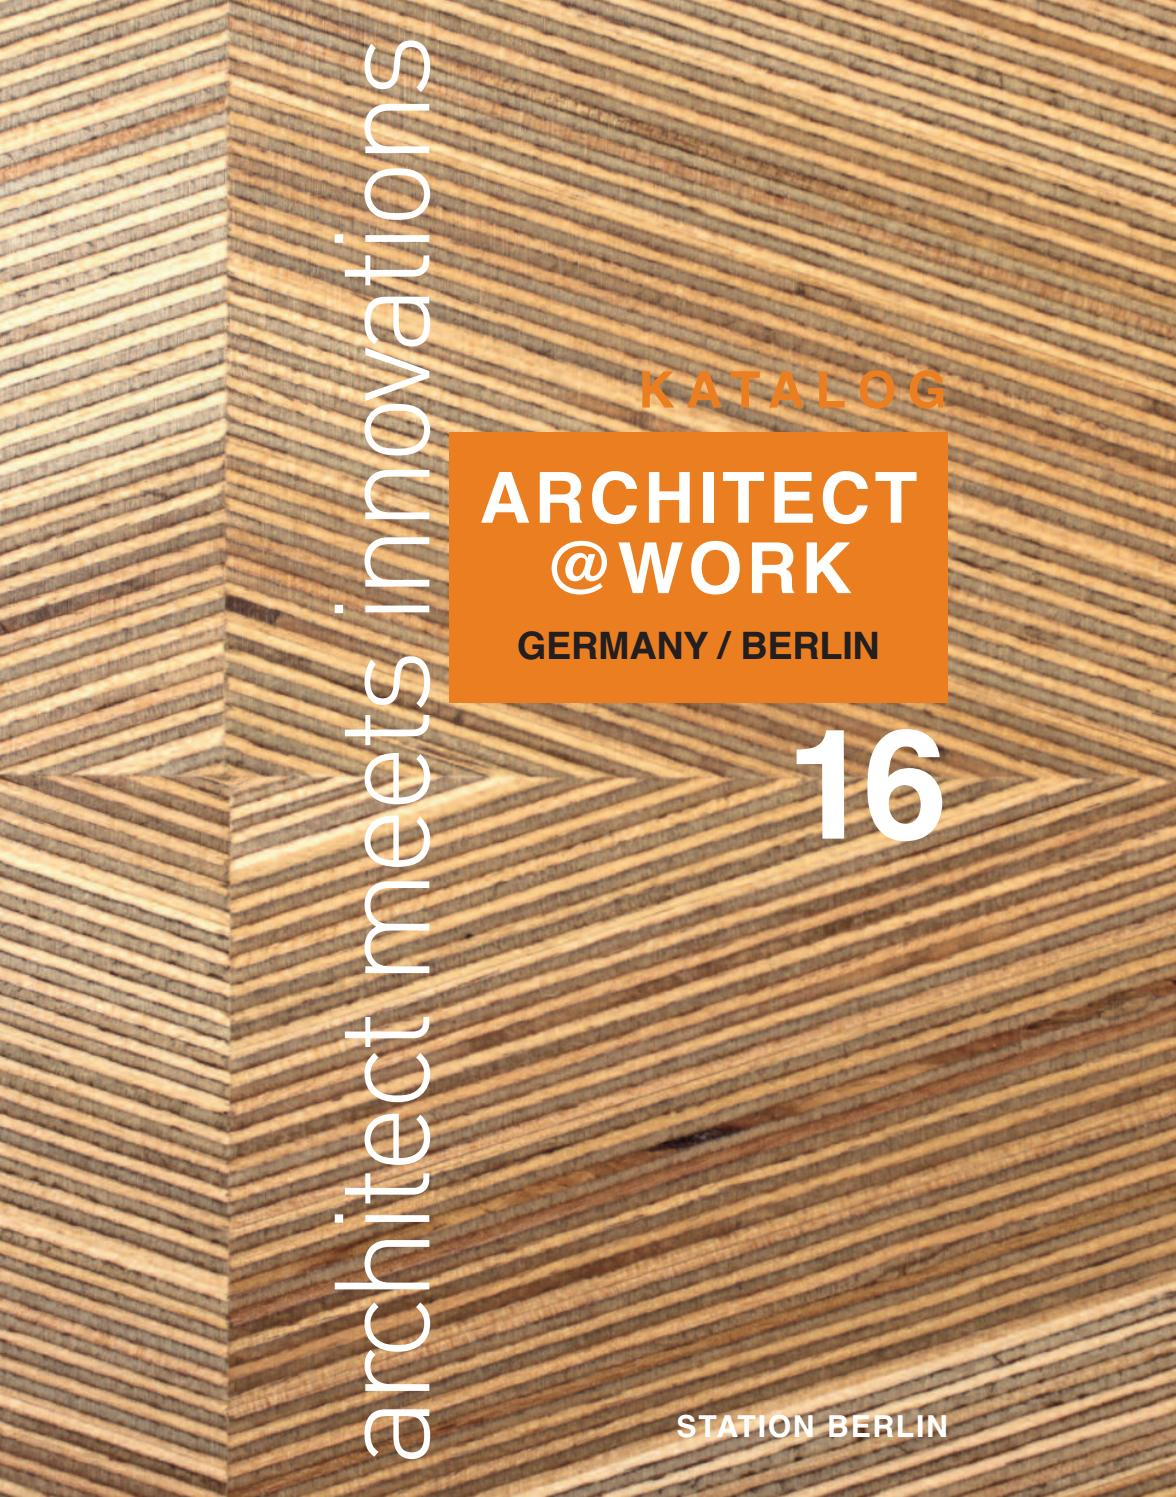 Architect@Work/Berlin by blinked - issuu